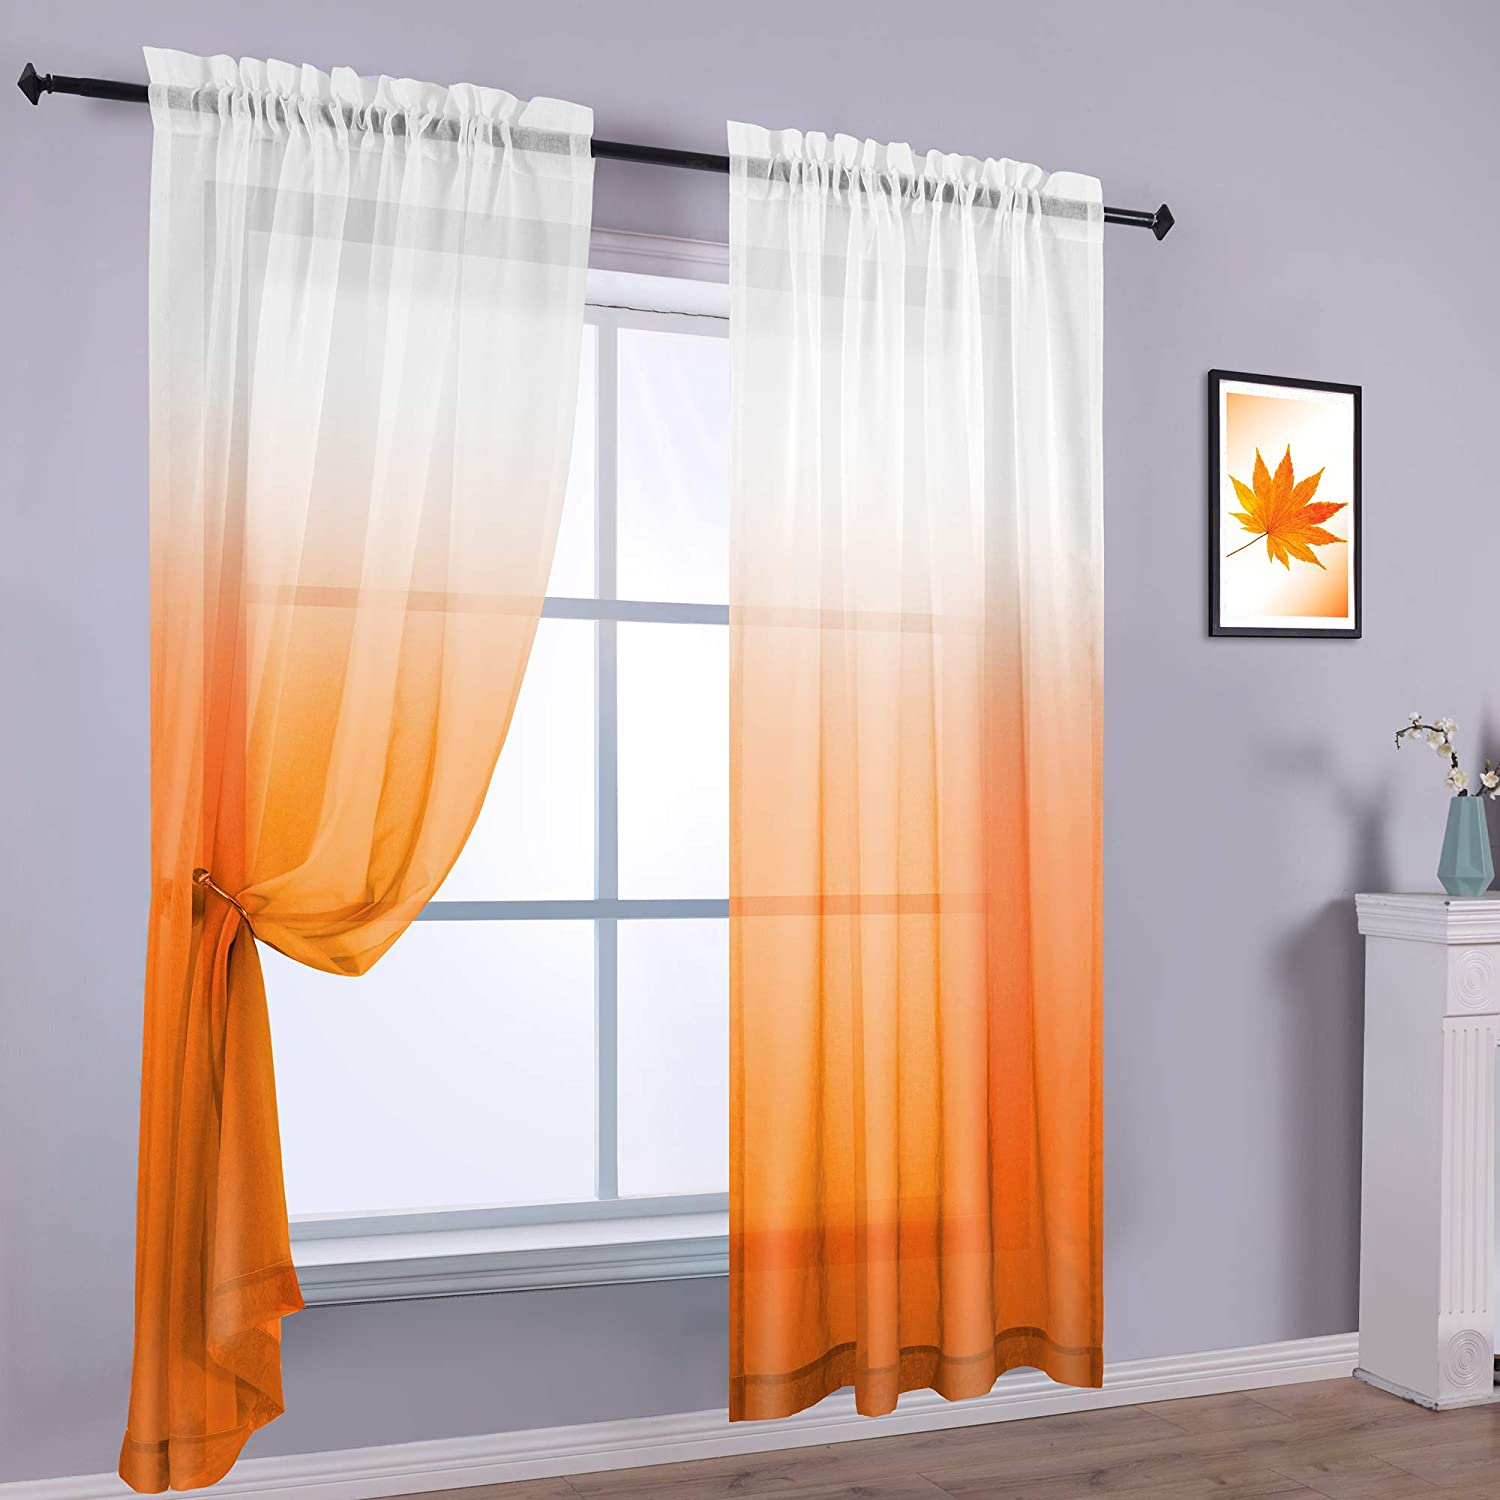 Amazon Com Orange Curtains 96 Inches Long For Dining Room Set 2 Panels Rod Pocket Voile Sheer Drapes Ombre Rainbow Tangerine Curtains For Bedroom Windows Living Kids Girls 96in Length Gradient Burnt Orange